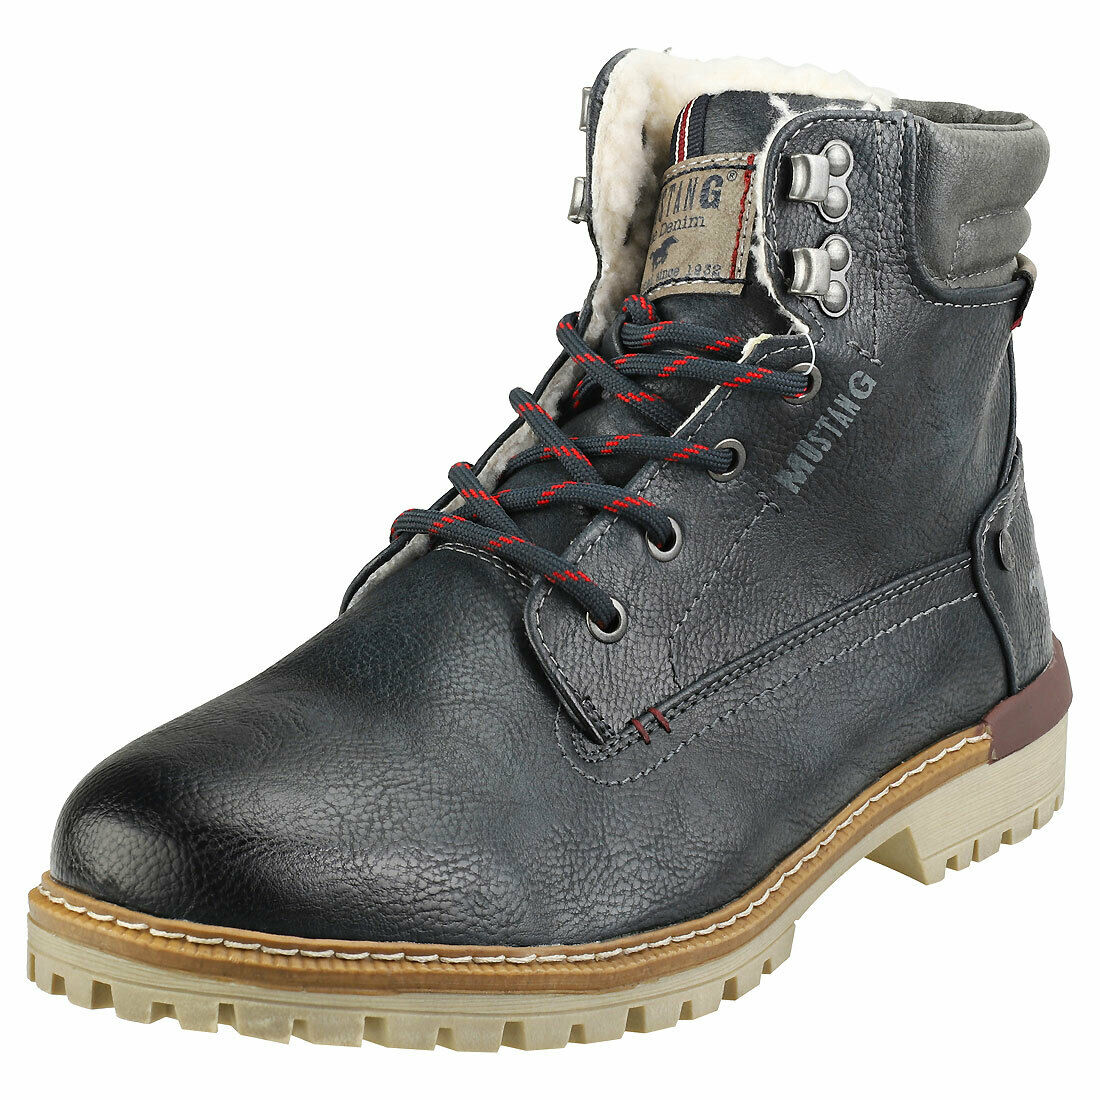 Mustang Lace Up Side Zip Mens Navy Synthetic Chukka Stiefel